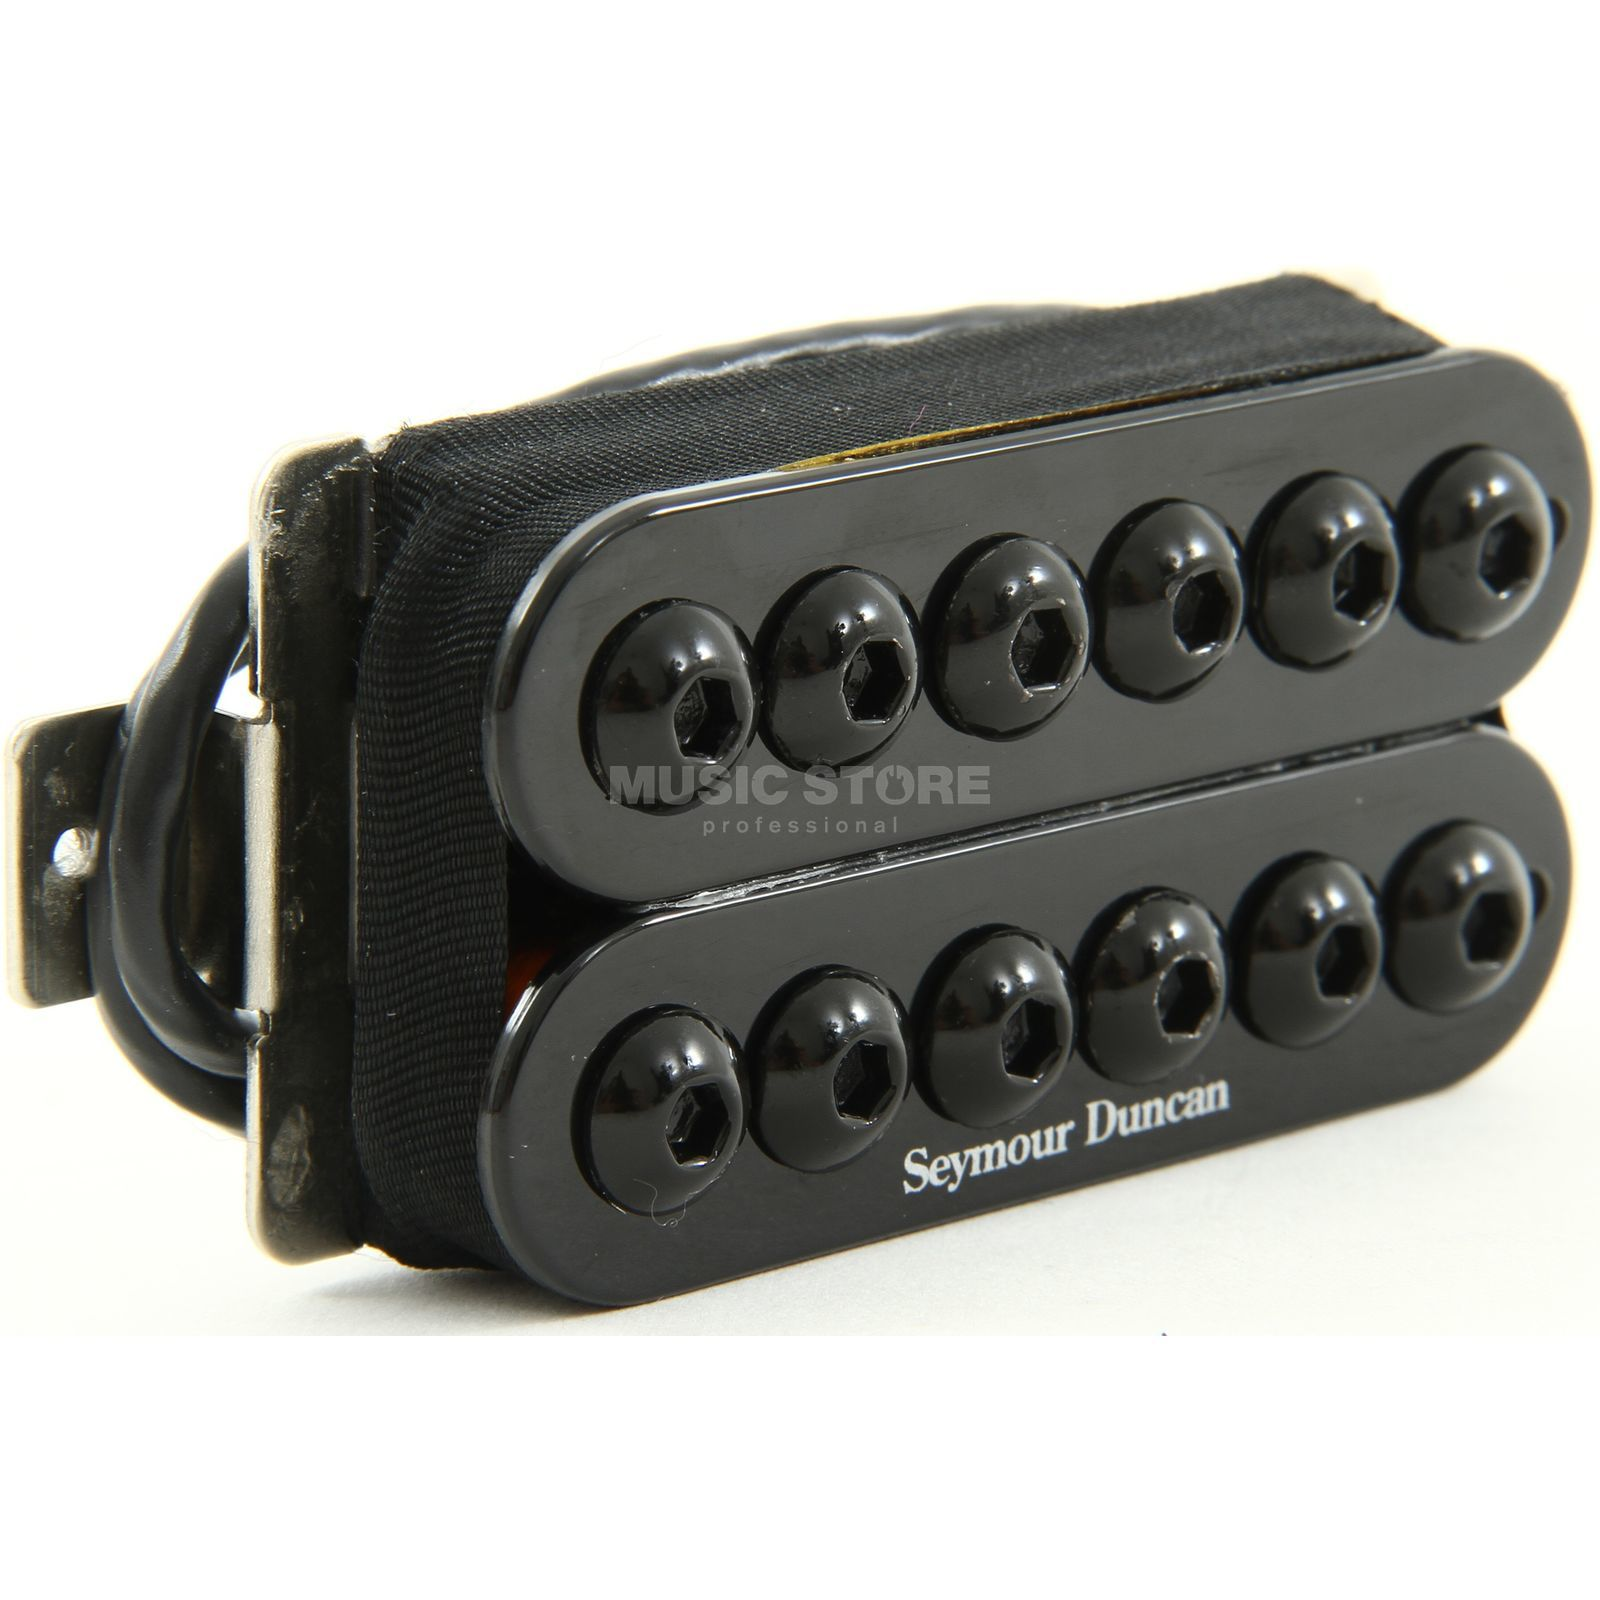 Seymour Duncan Invader Modell Neck black 4-phase Изображение товара